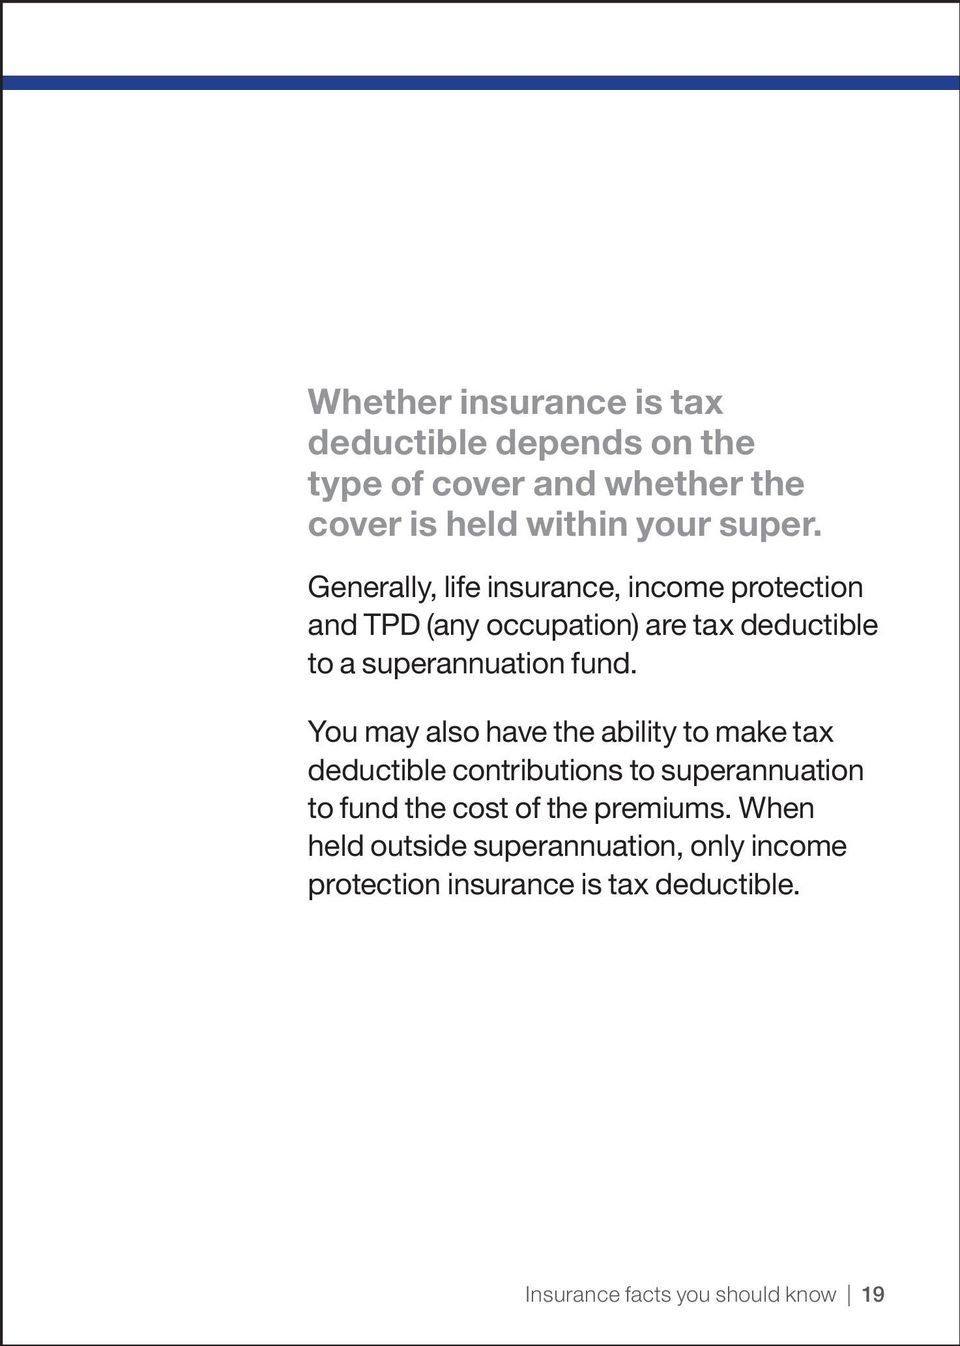 You may also have the ability to make tax deductible contributions to superannuation to fund the cost of the